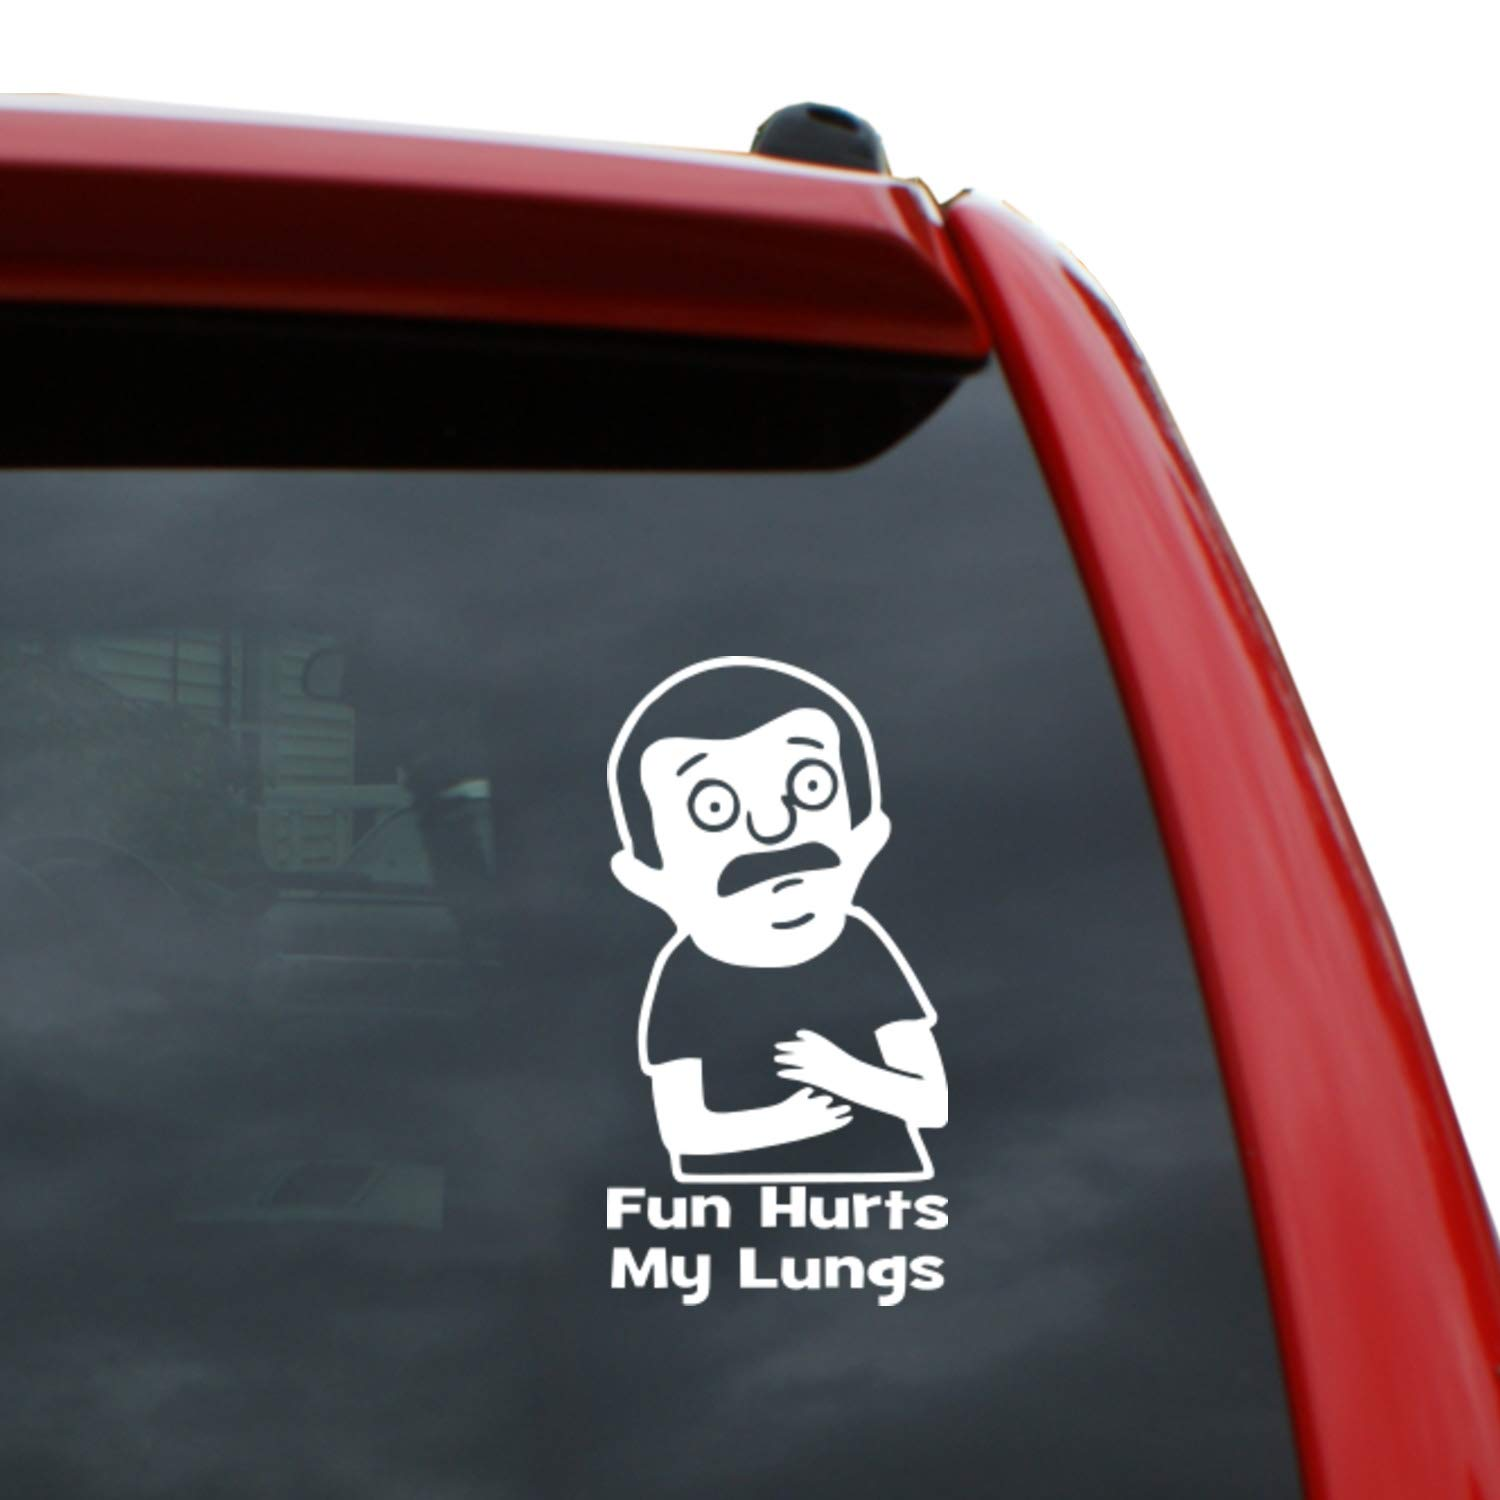 """Black Heart Decals & More Bob's Burgers/Regular Sized Rudy Vinyl Decal Sticker   Color: White   5"""" Tall"""